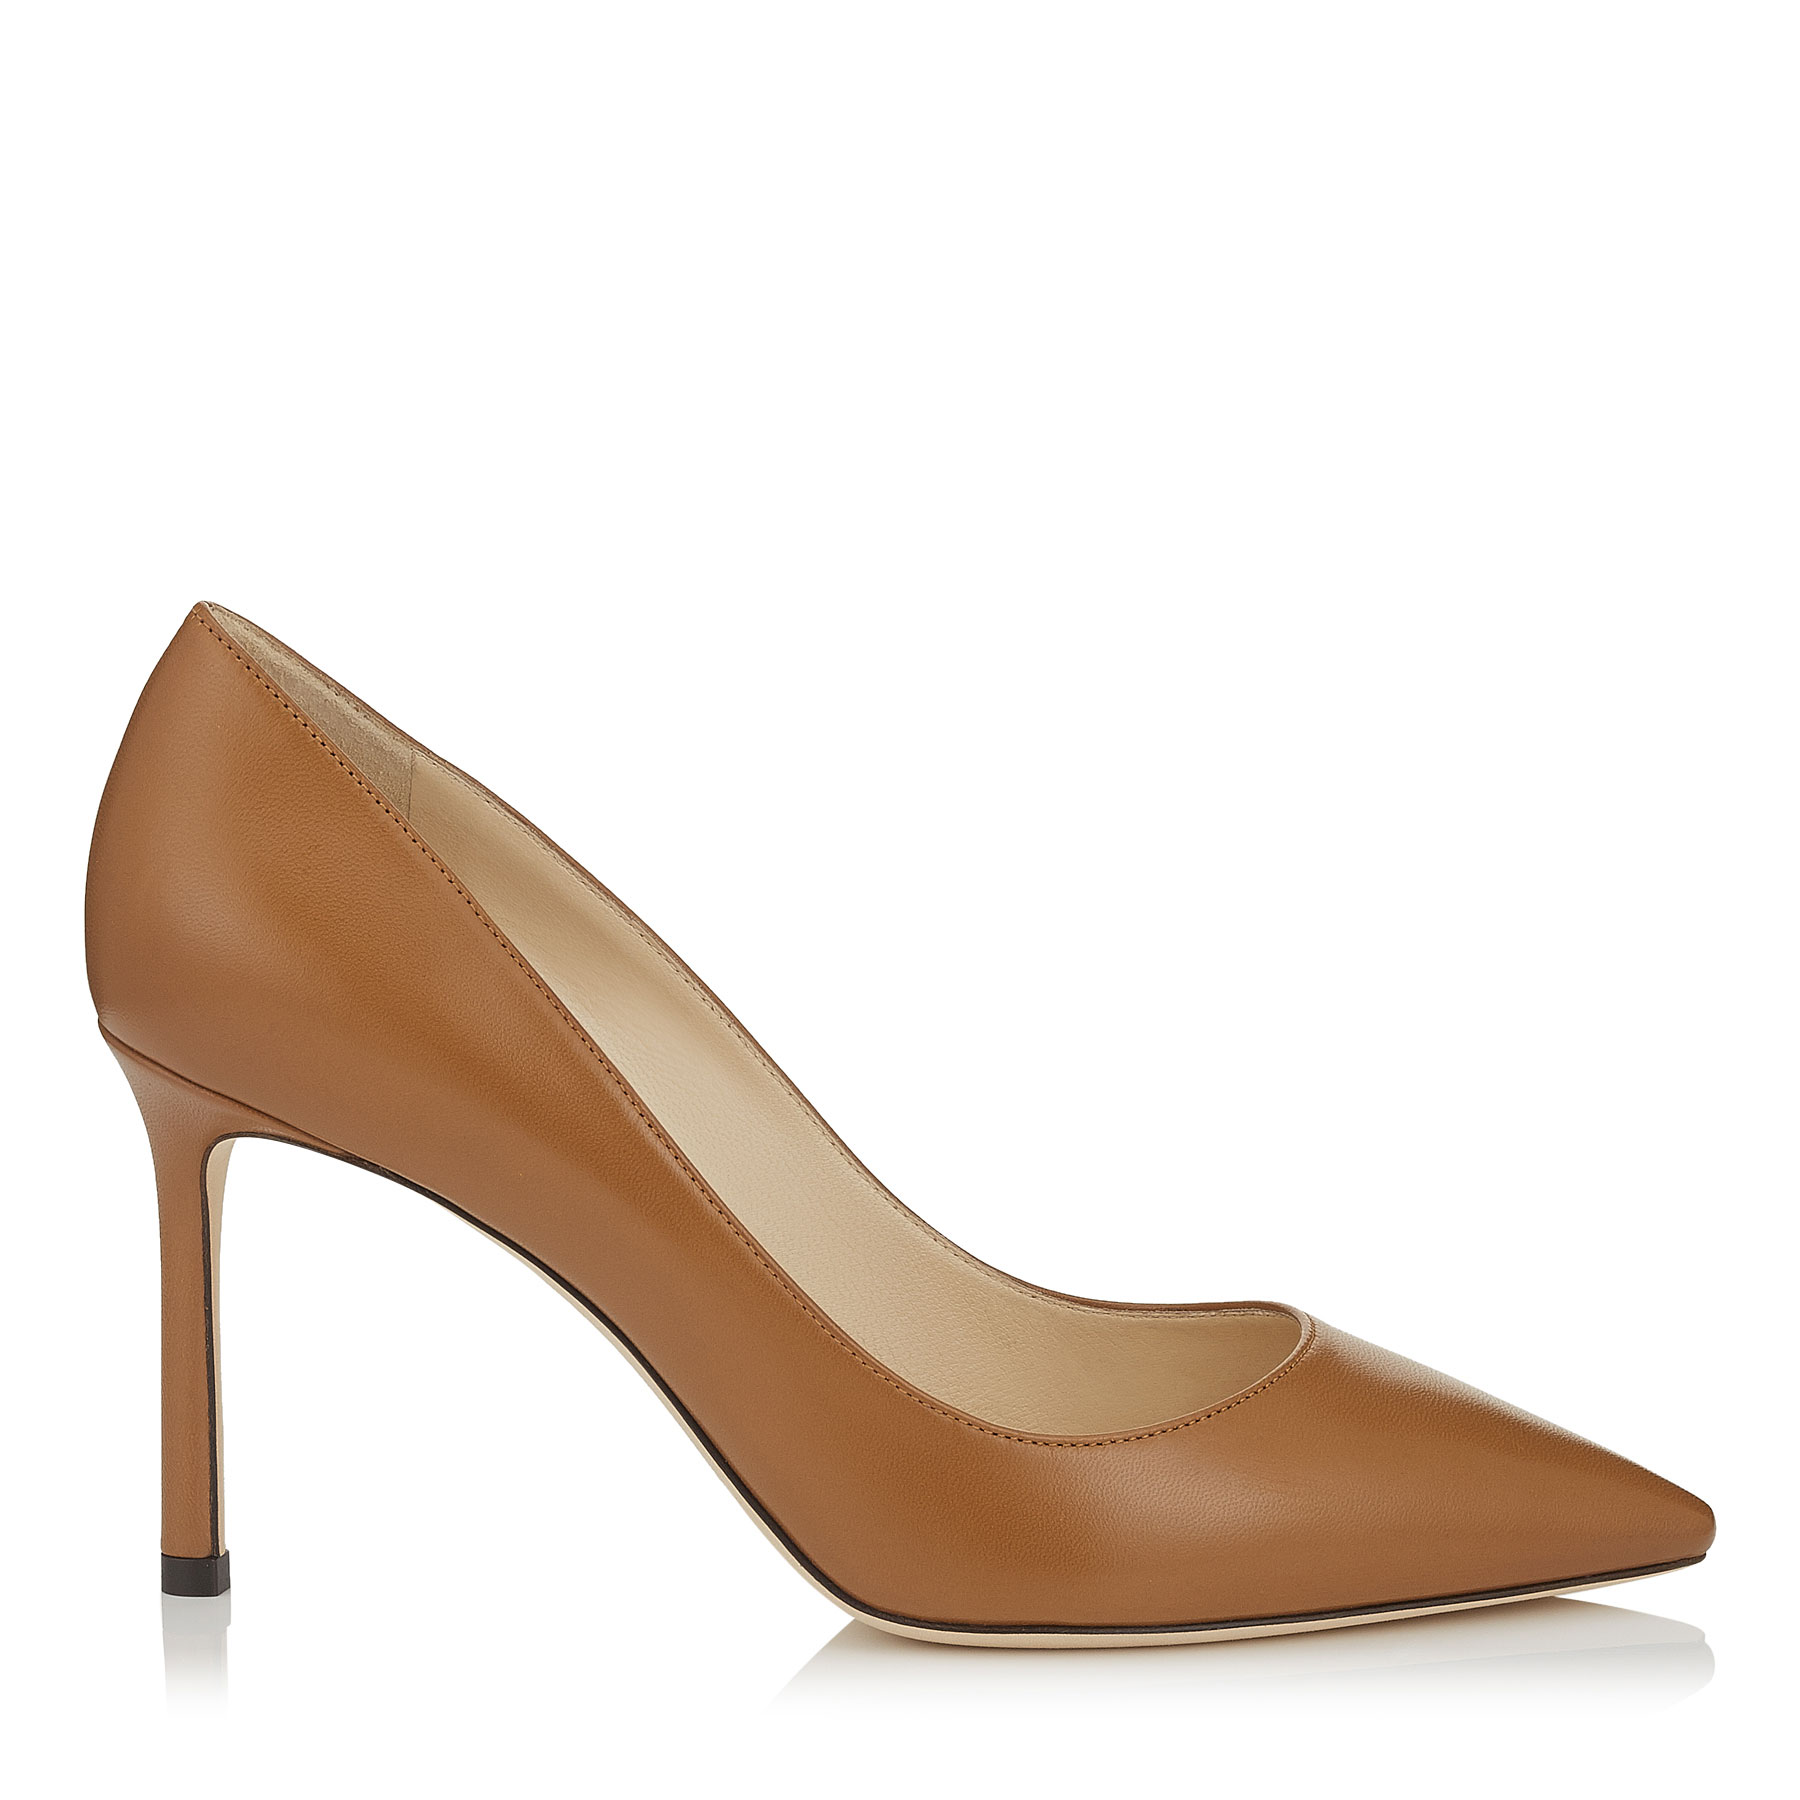 ROMY 85 Canyon Kid Leather Pointy Toe Pumps